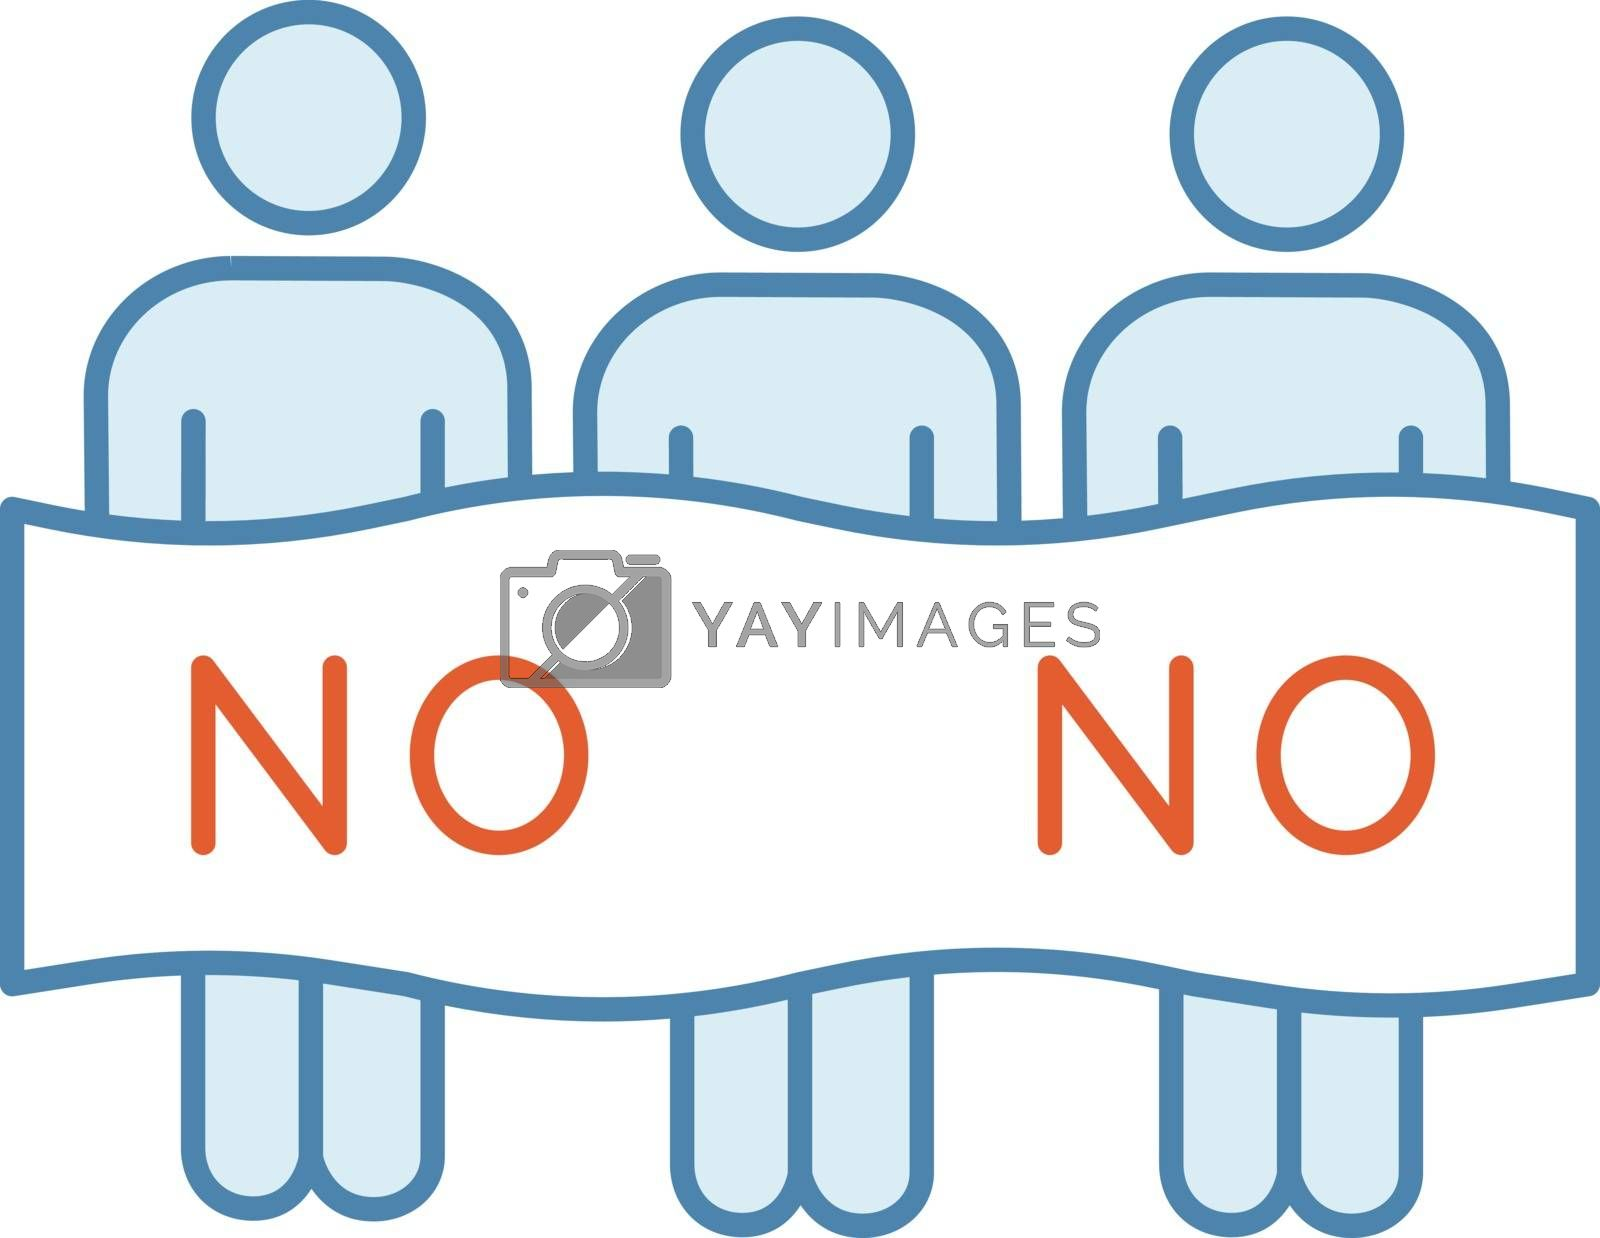 Protest event color icon. Political protest. Activists. Social movement. Public opinion. Demonstration, meeting. Collective action. Unconventional participation. Isolated vector illustration